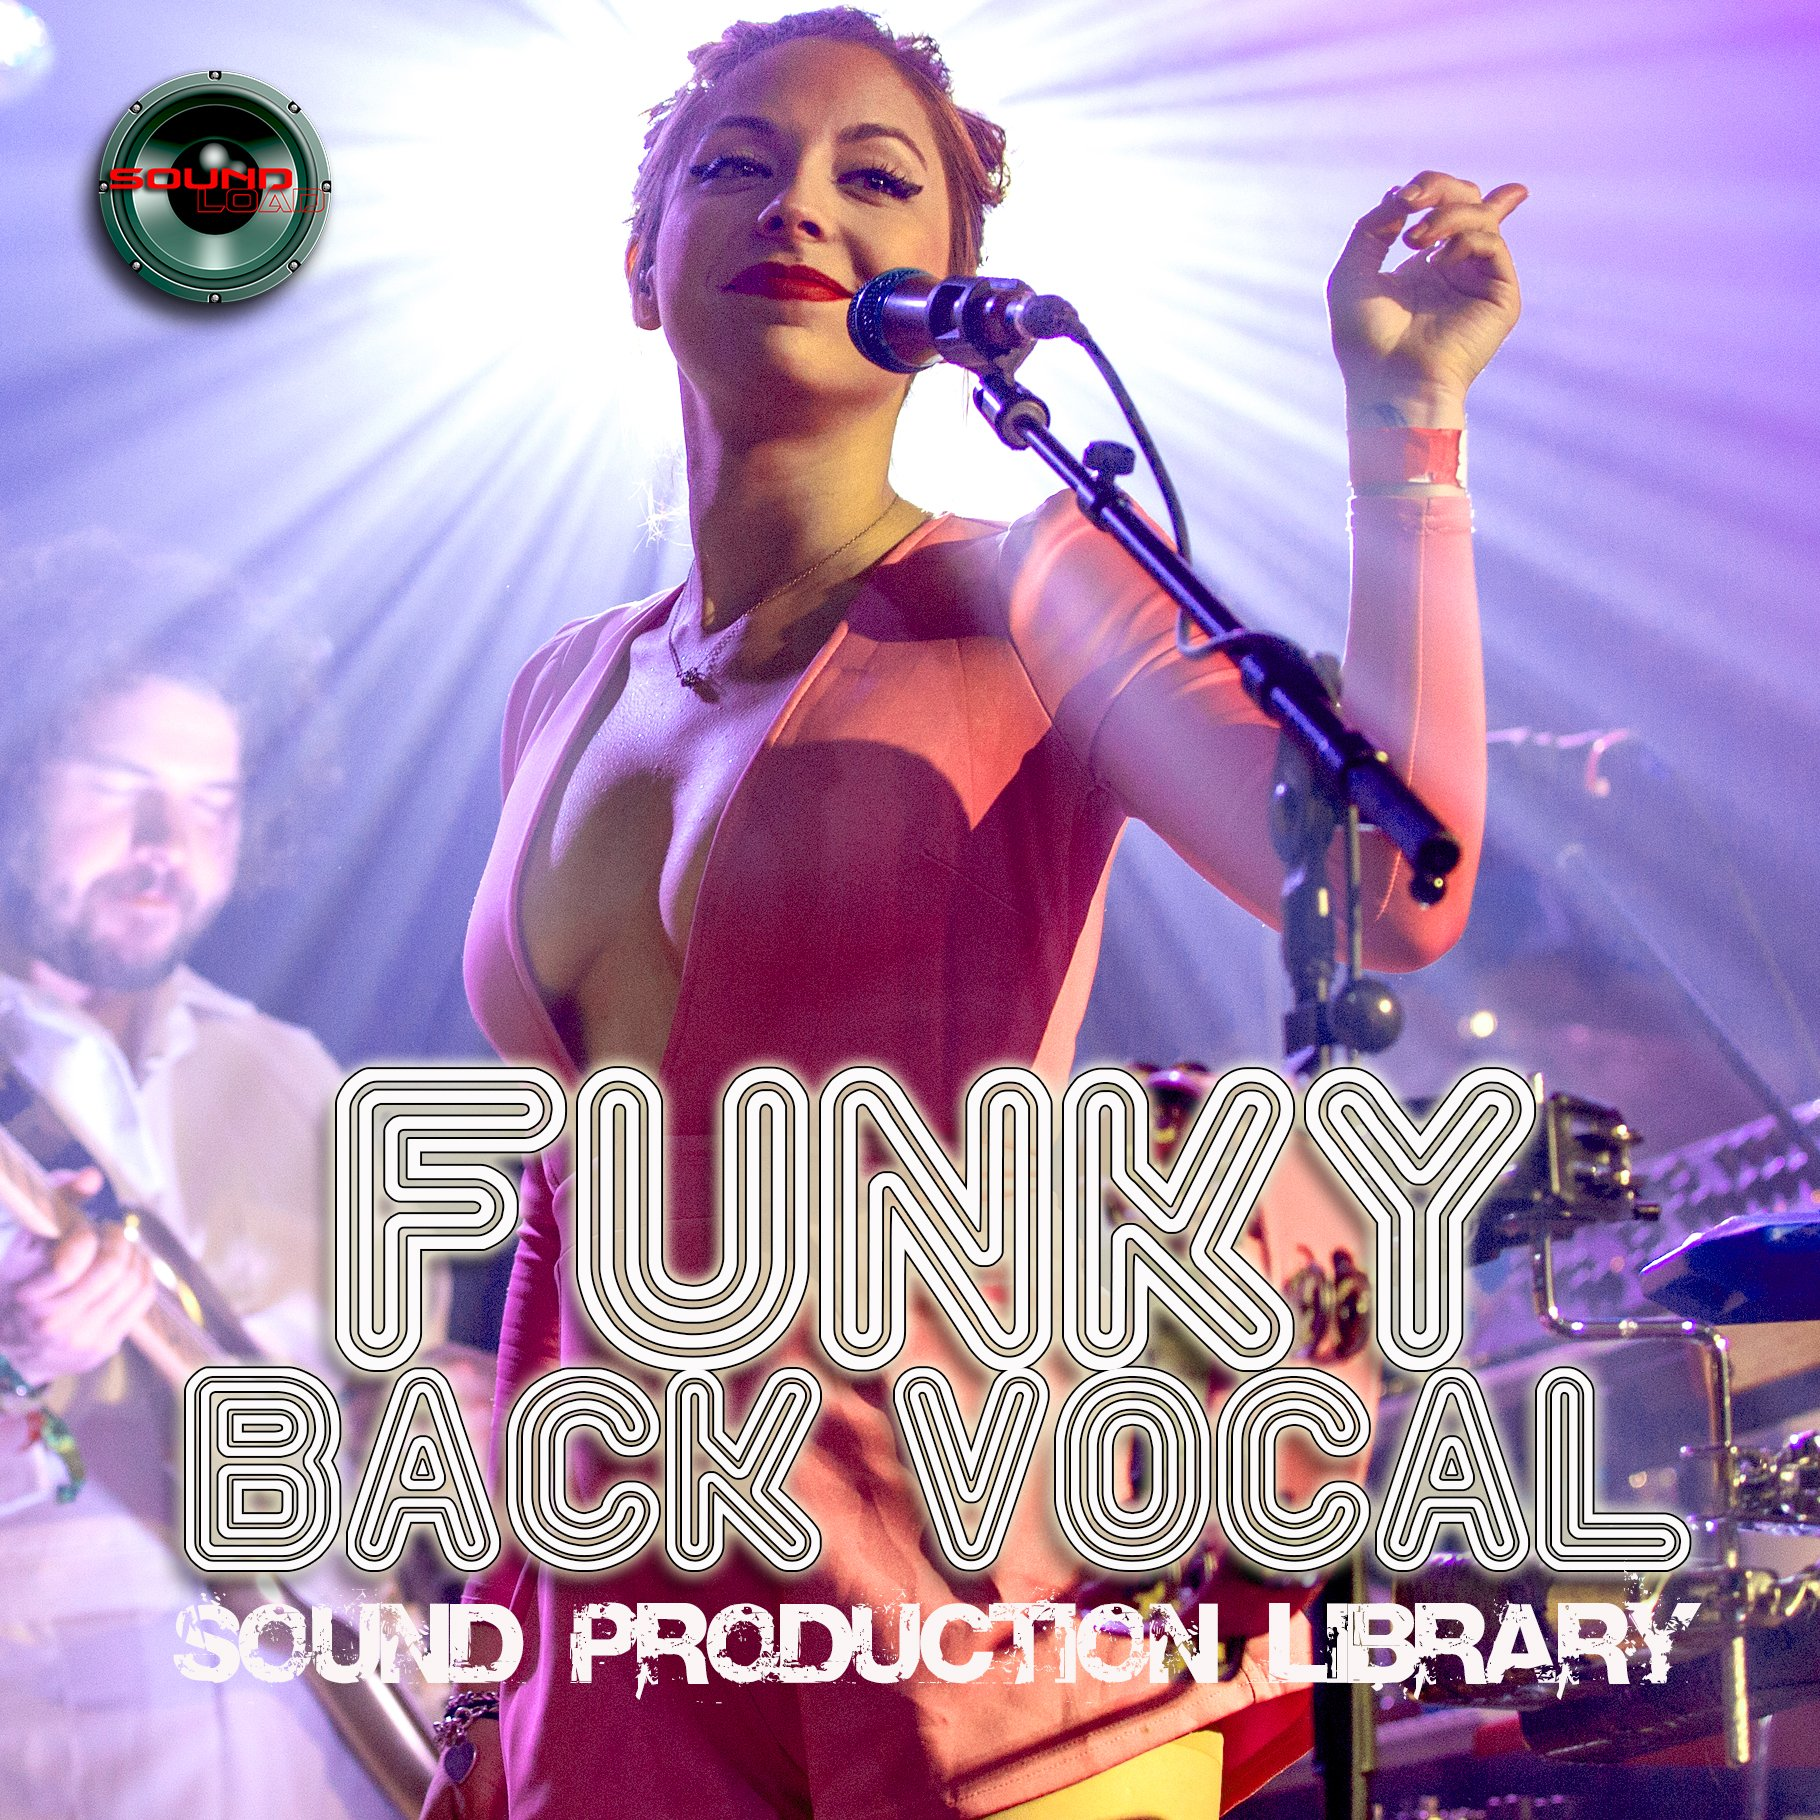 FUNKY BACK VOCAL - Large Unique Multi-Layer Studio WAV/Kontakt Samples Library DVD or download